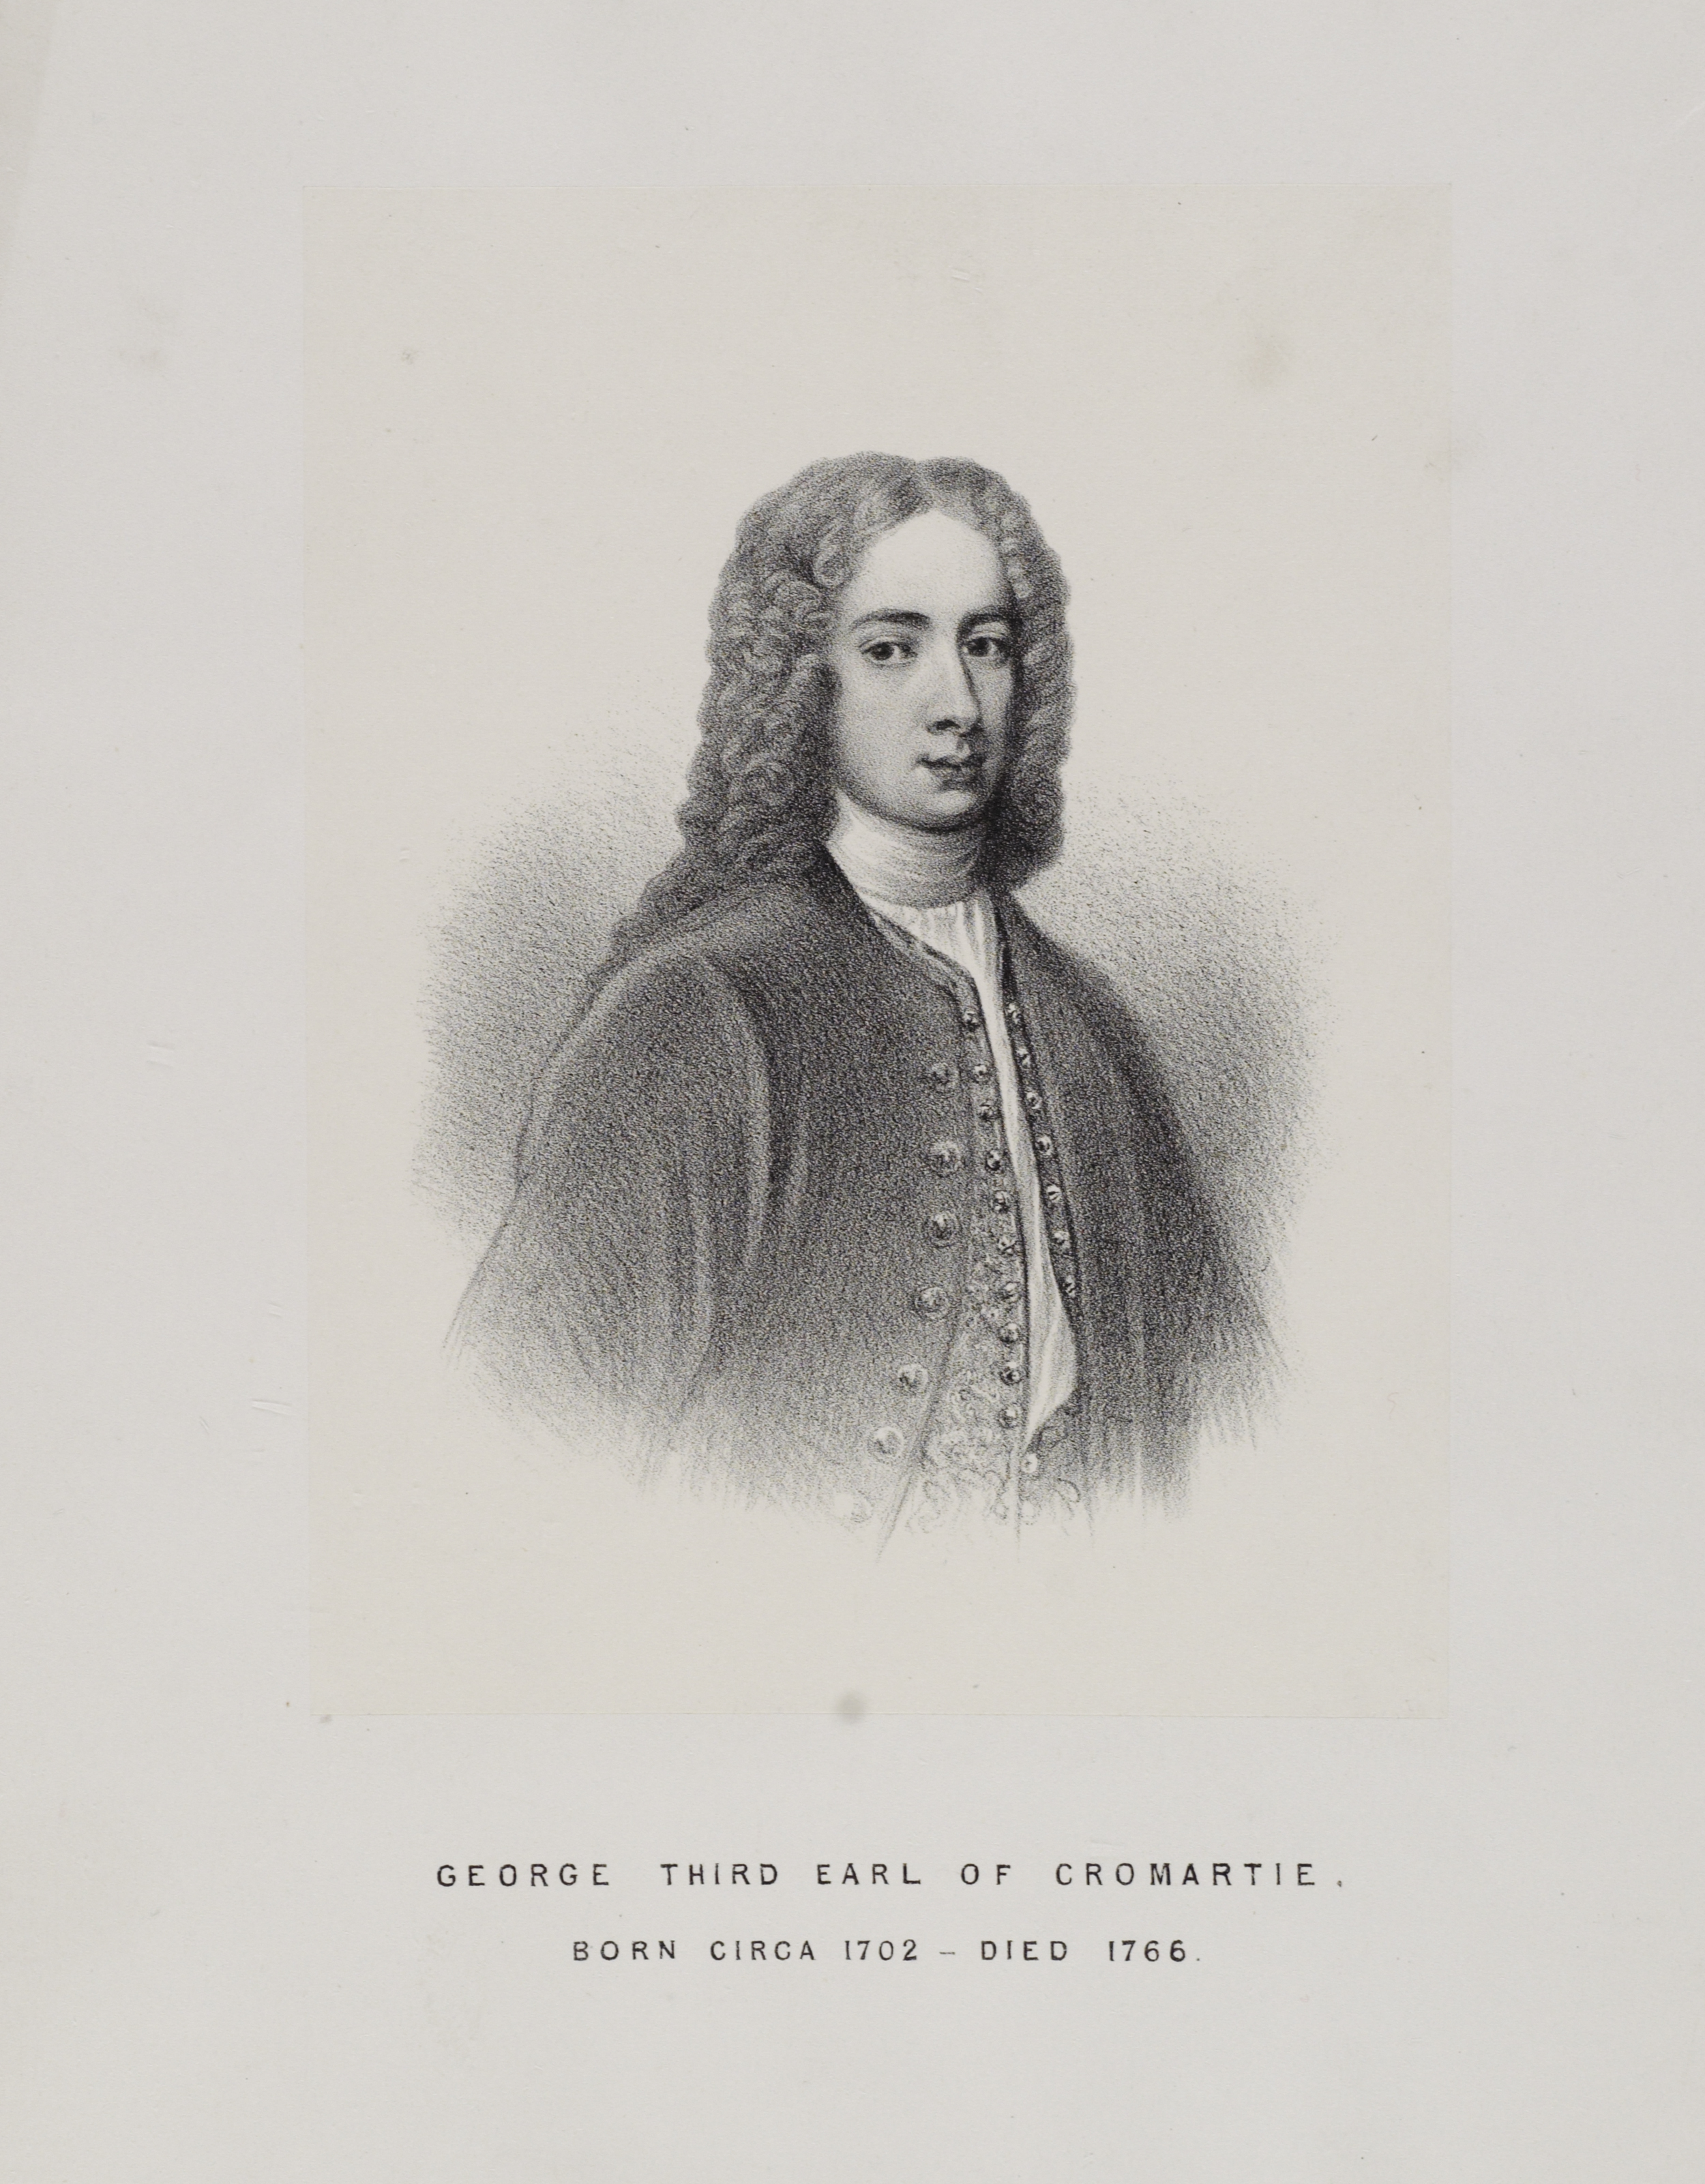 Illustration of George Mackenzie, third earl of Cromartie